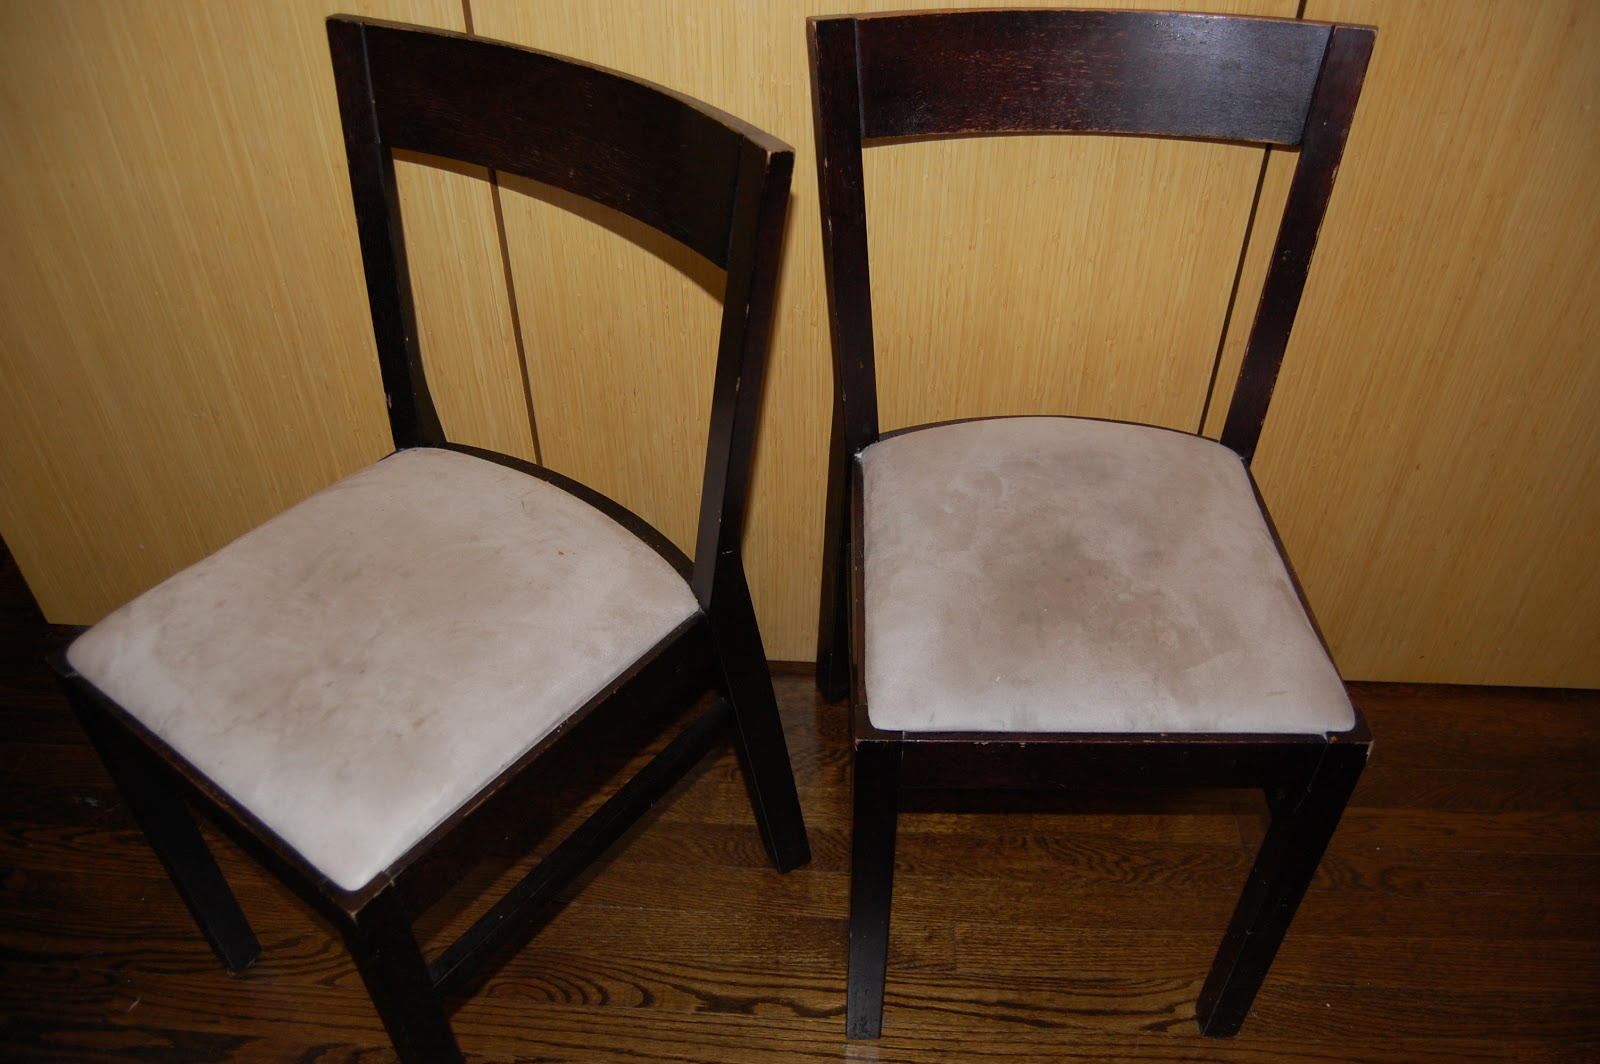 SHED THE LOVE Before and After Kitchen Chair Reupholstery